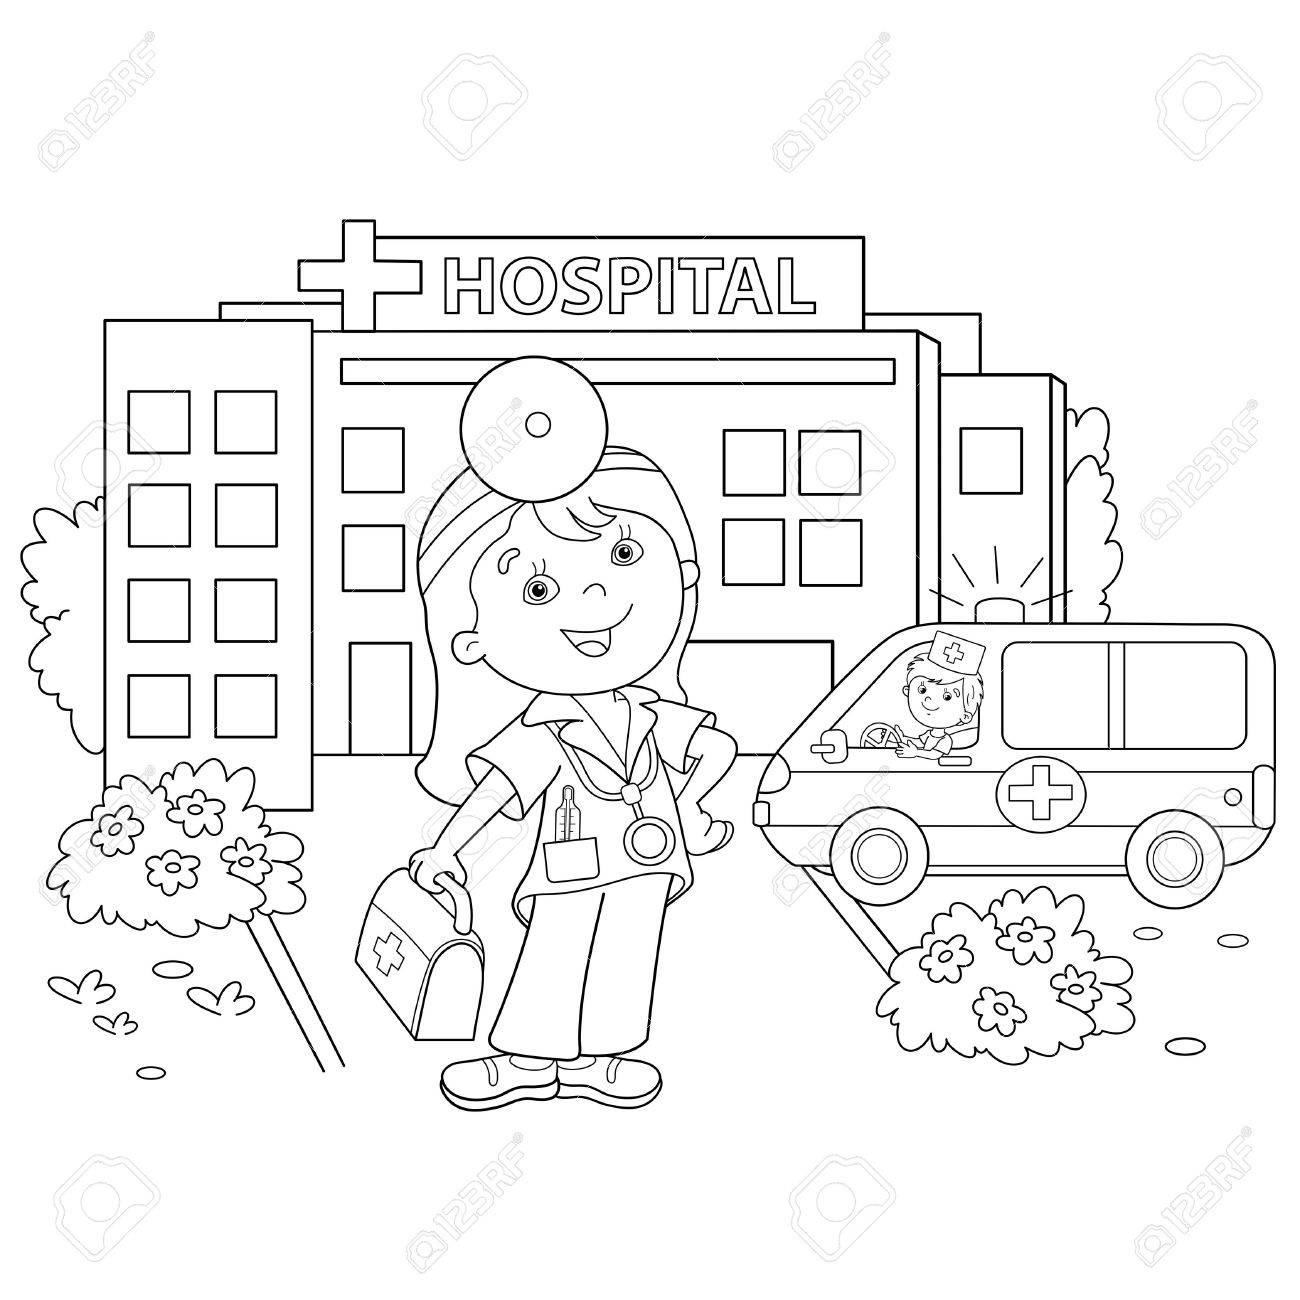 Free coloring pages hospital - Coloring Page Outline Of Cartoon Doctor With Ambulance Car Near The Hospital Profession Medicine